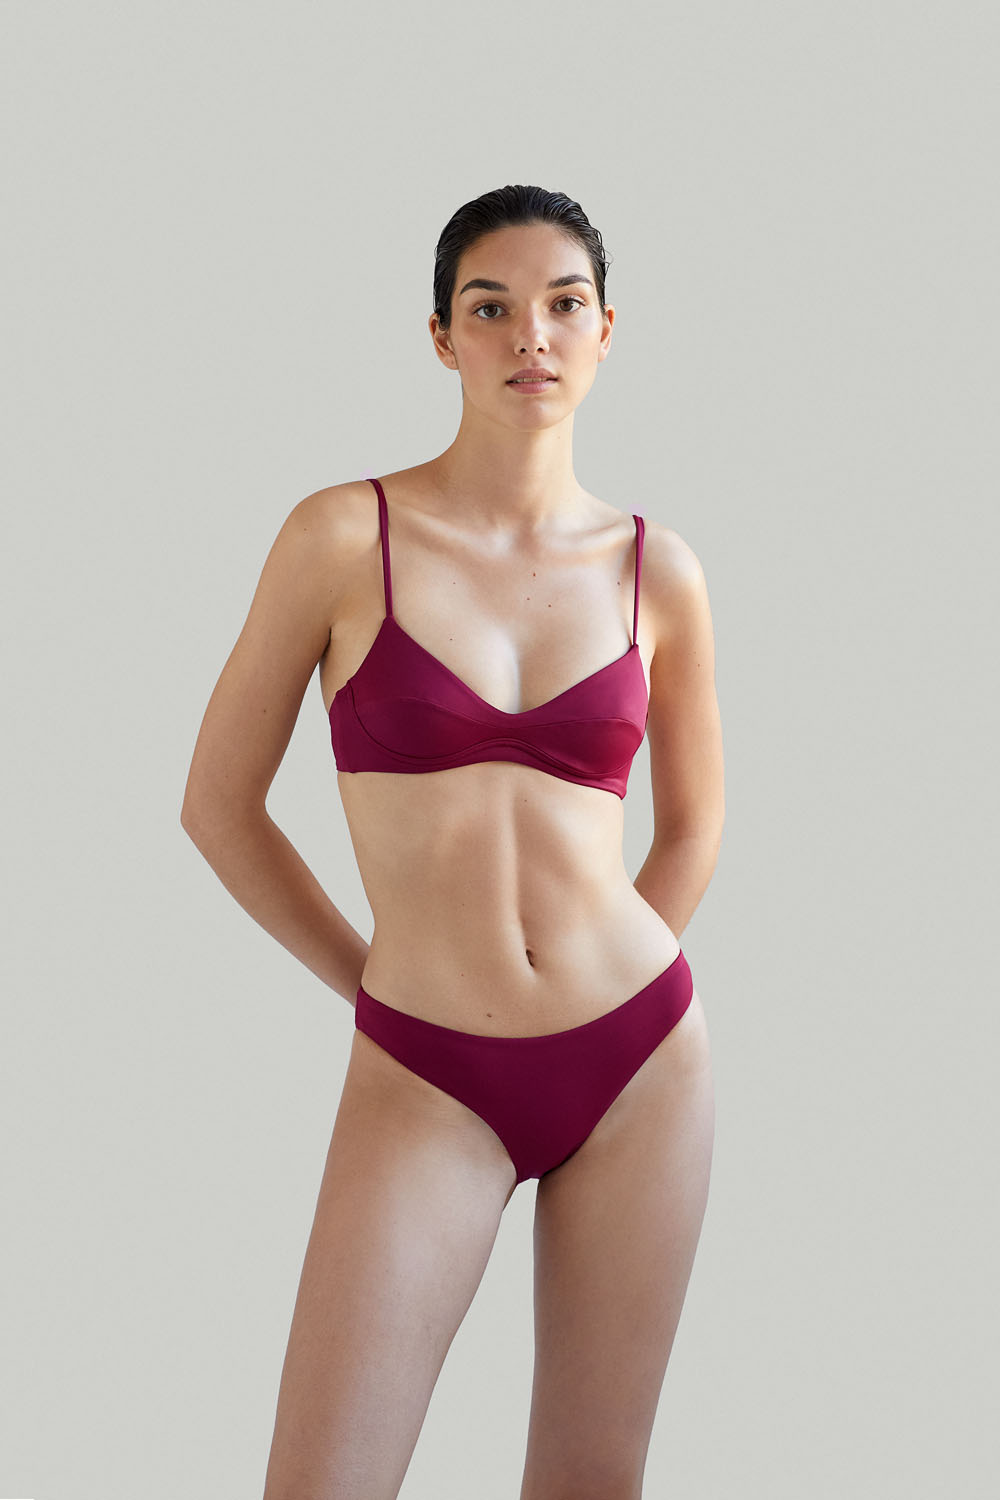 Sustainable Luxury Swimwear / Ropa de baño sostenible, eco bikini / bikini ecológico. Cayo + Entalula in pitaya, by NOW_THEN